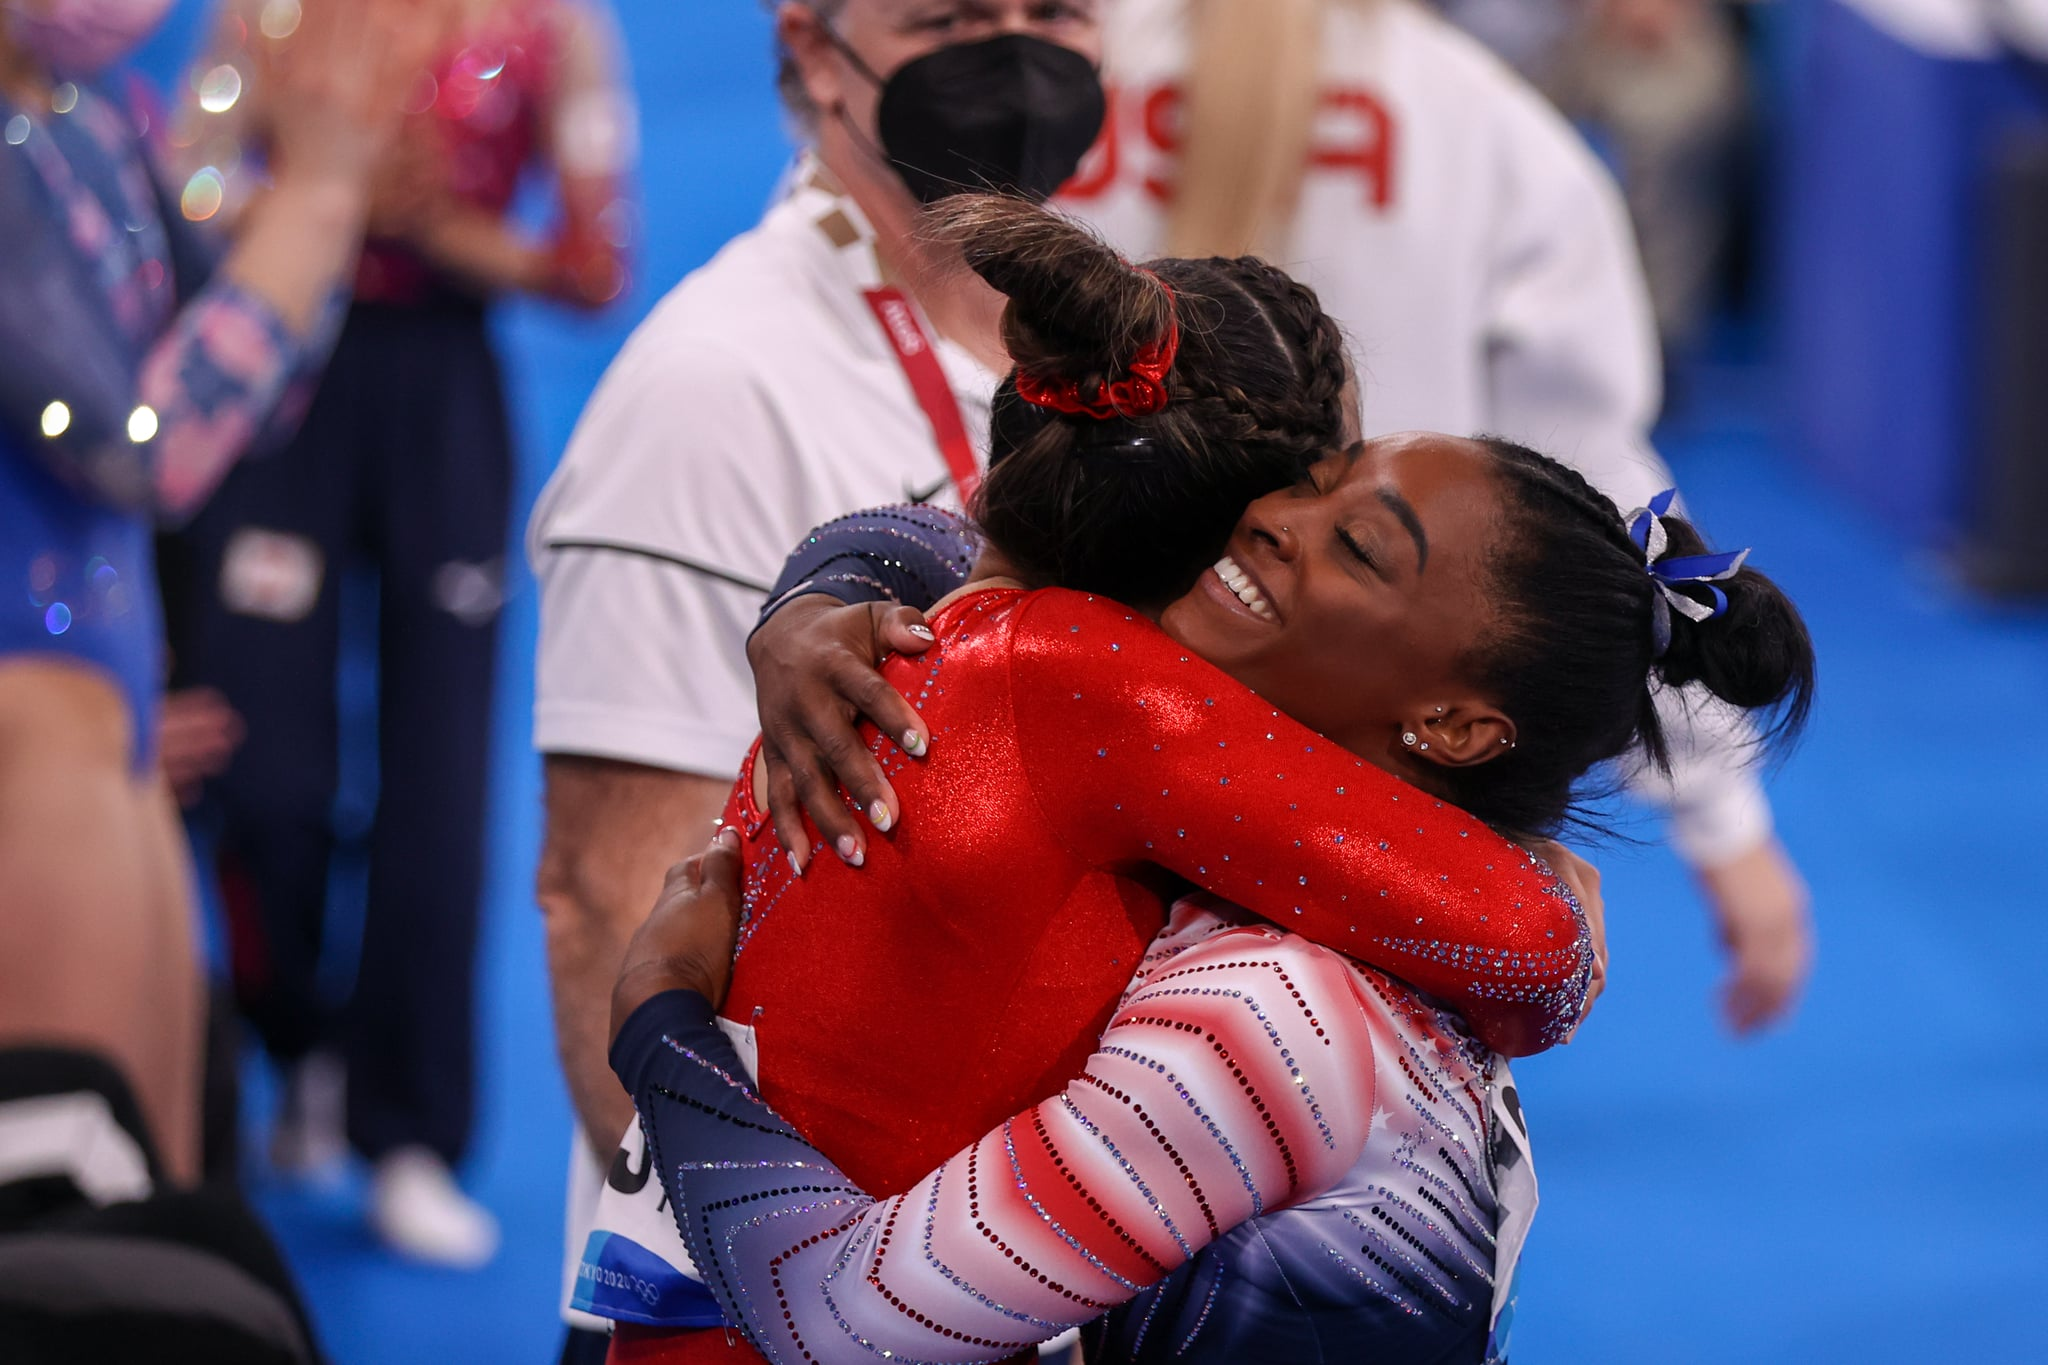 TOKYO, JAPAN - AUGUST 3: Sunisa Lee of Team United States , Simone Biles of Team United States competes during the Women's Balance Beam Final on day eleven of the Tokyo 2020 Olympic Games at Ariake Gymnastics Centre on August 3, 2021 in Tokyo, Japan (Photo by Iris van den Broek/BSR Agency/Getty Images)